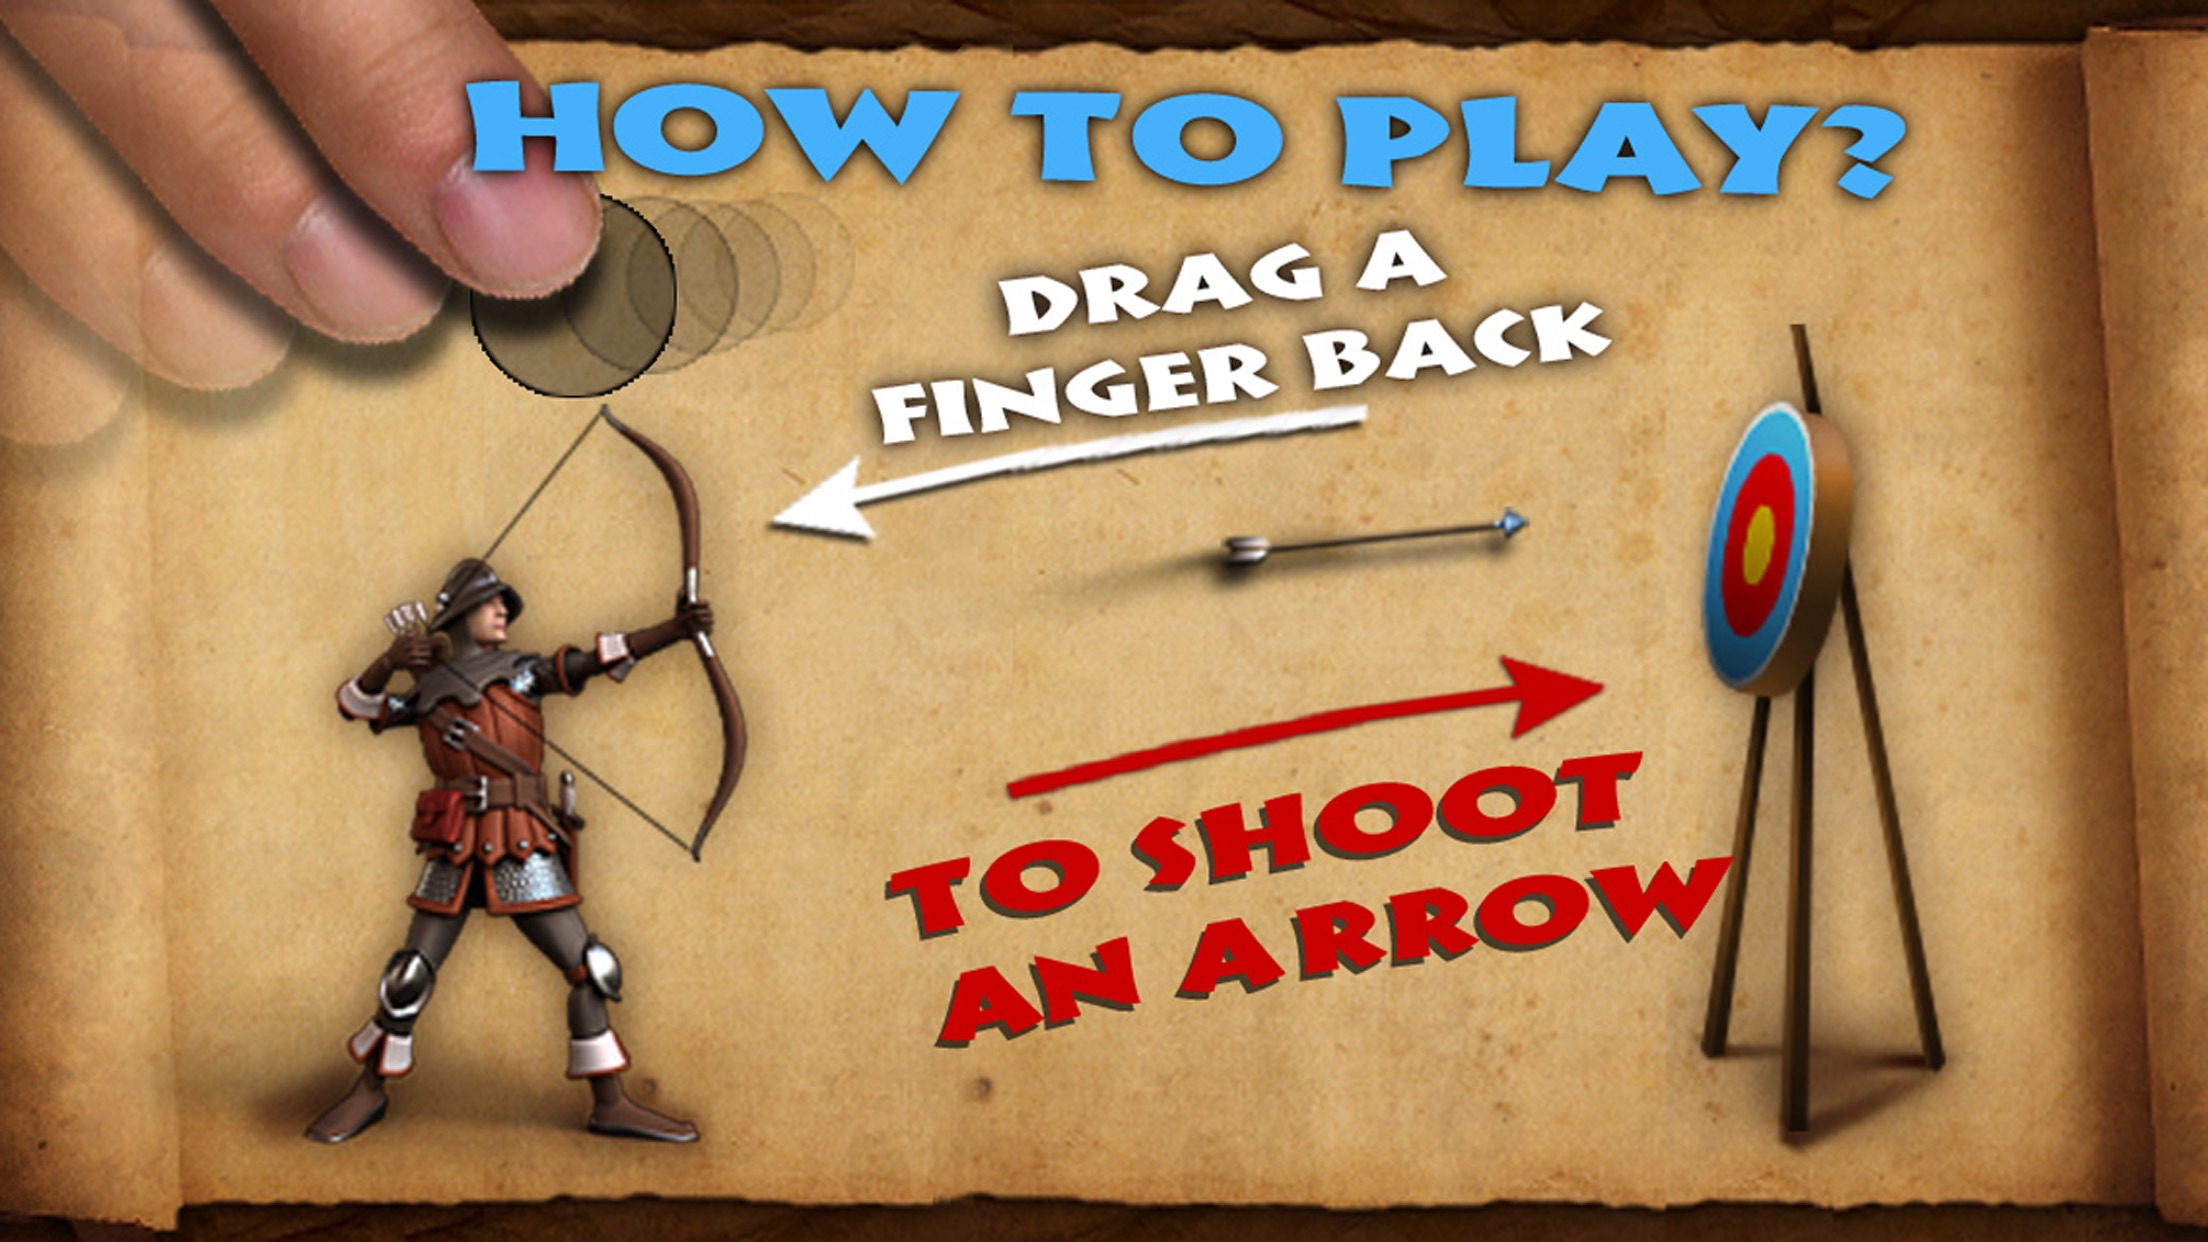 Bowman - bow and arrow games Screenshot